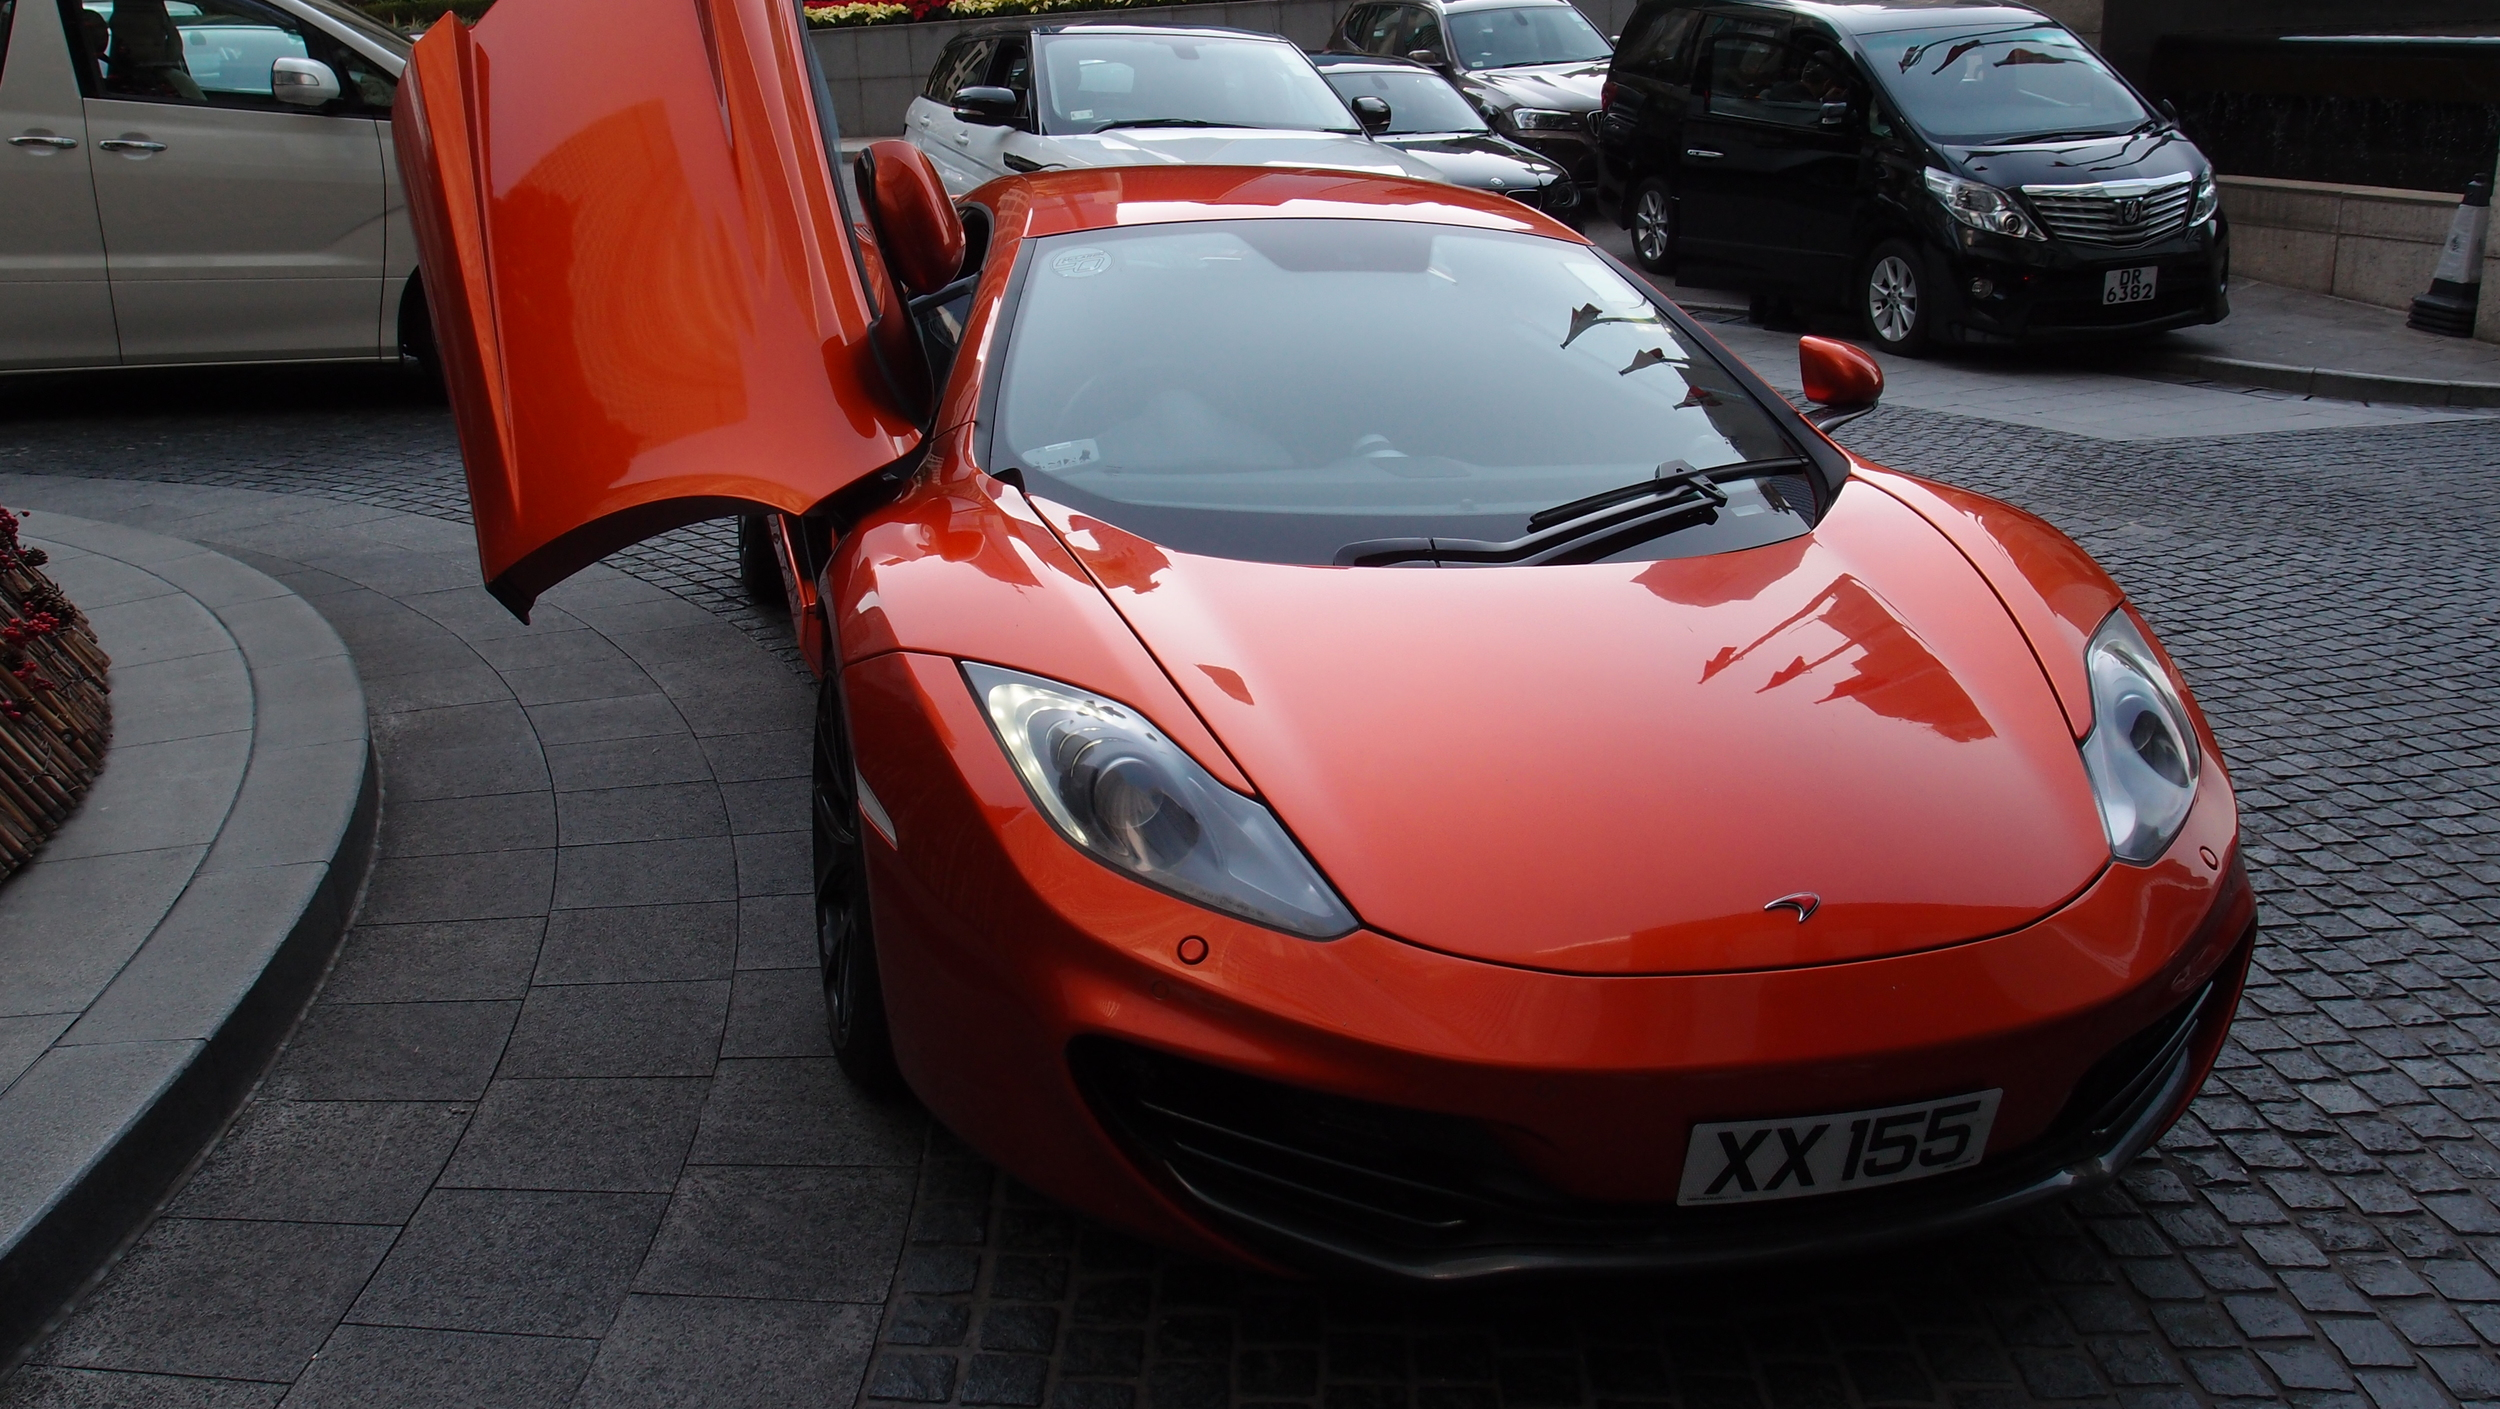 McLaren at the Four Seasons Hotel